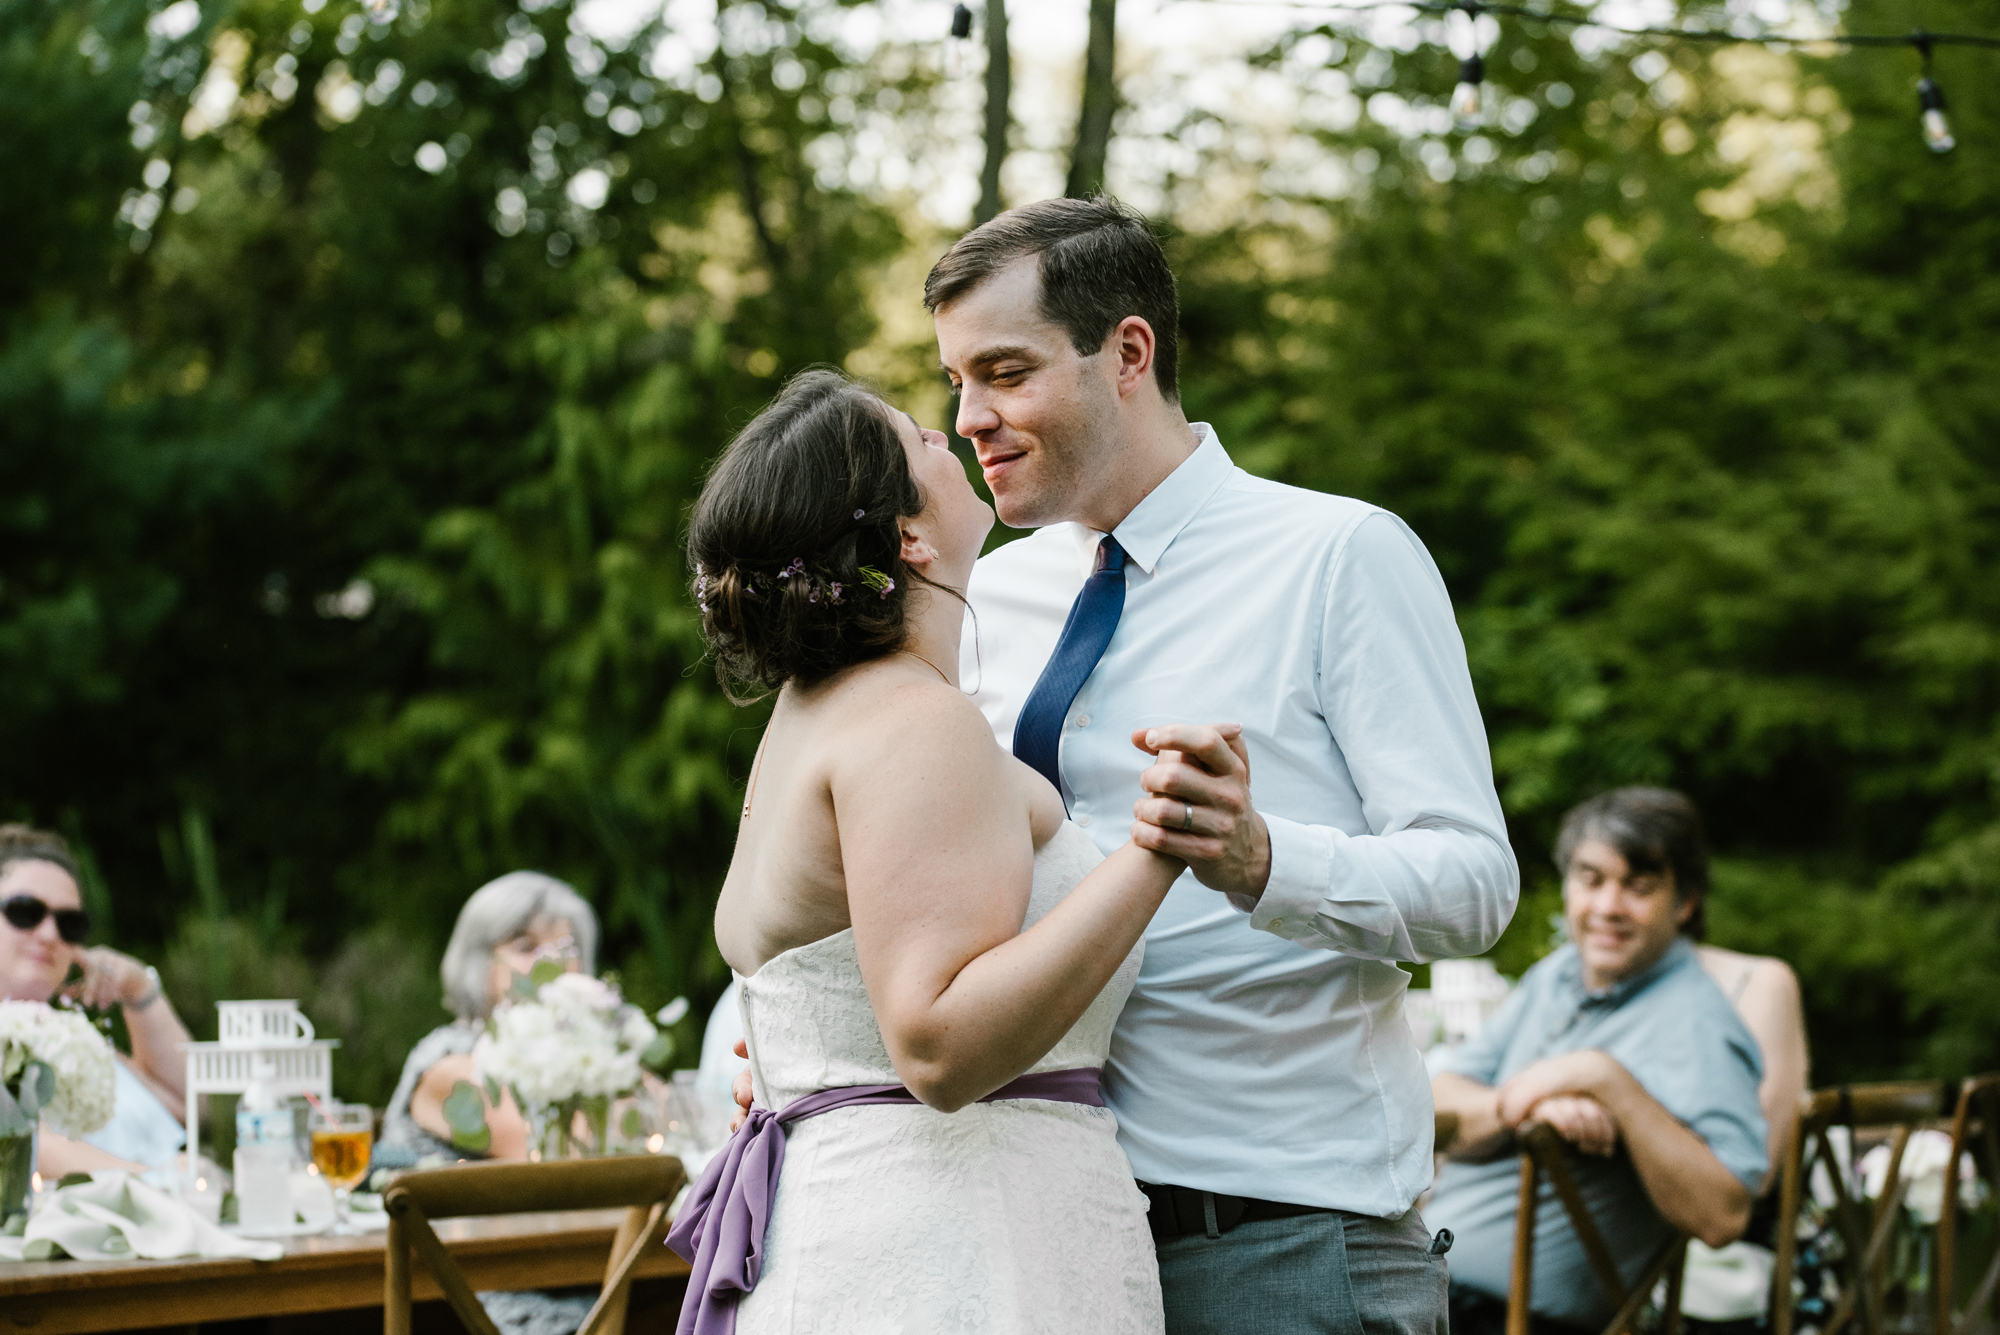 sawyer-michigan-backyard-wedding-dancing-pictures-sydney-marie (2).jpg